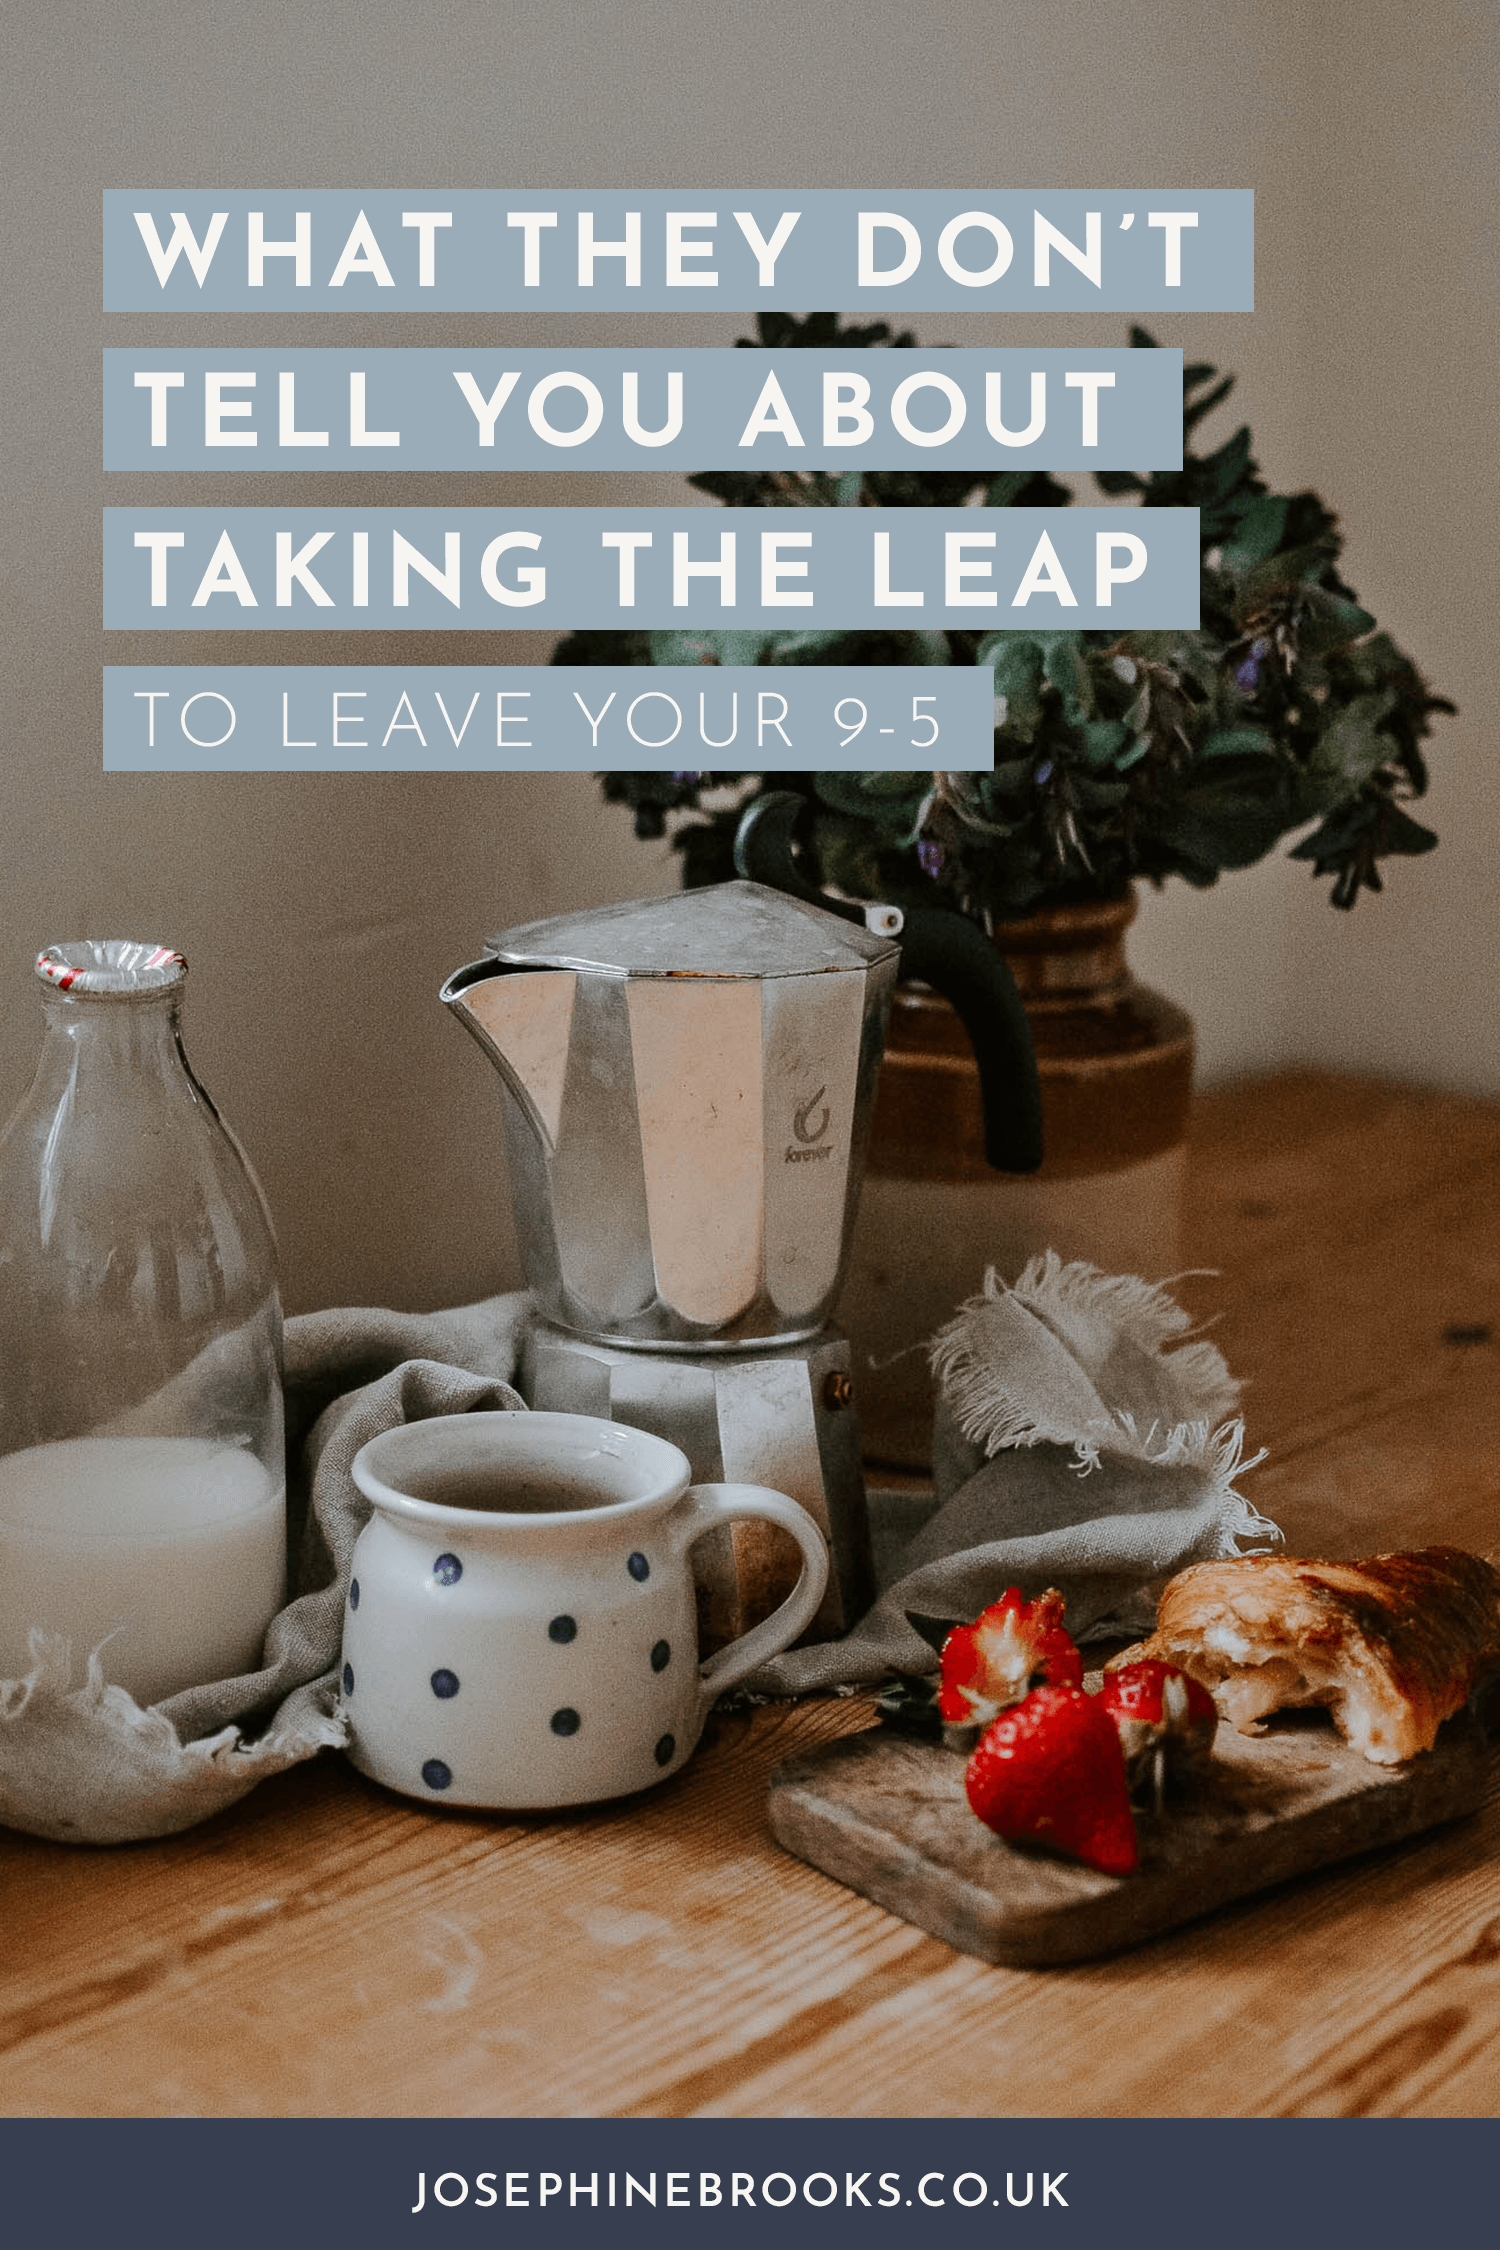 What They Don't Tell You About Taking The Leap To Leave Your 9-5 | Josephine Brooks